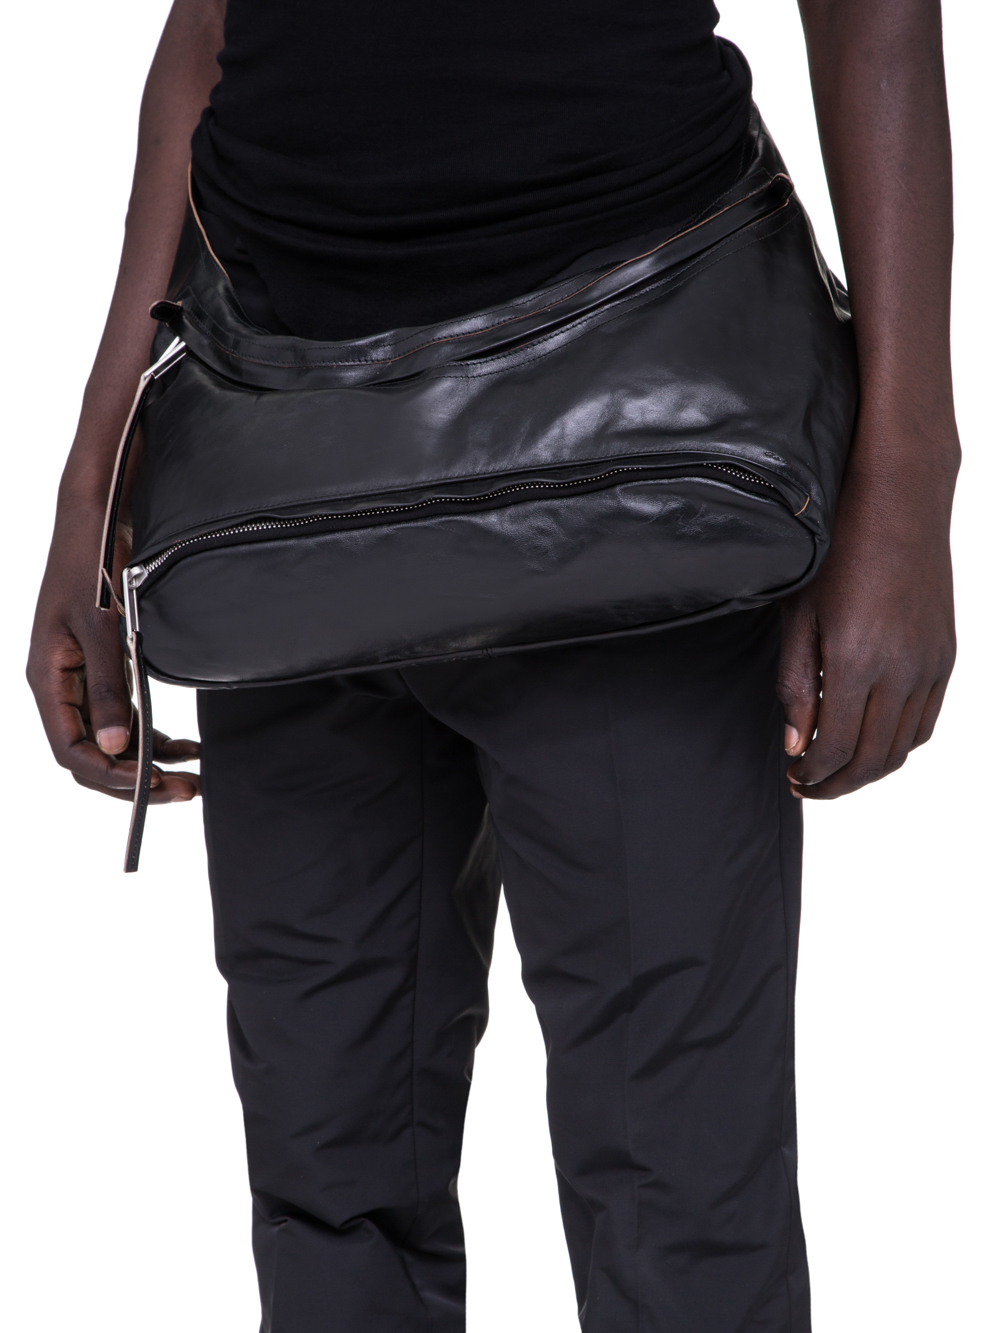 RICK OWENS SS19 BABEL FANNYPACK IN BLACK LEATHER